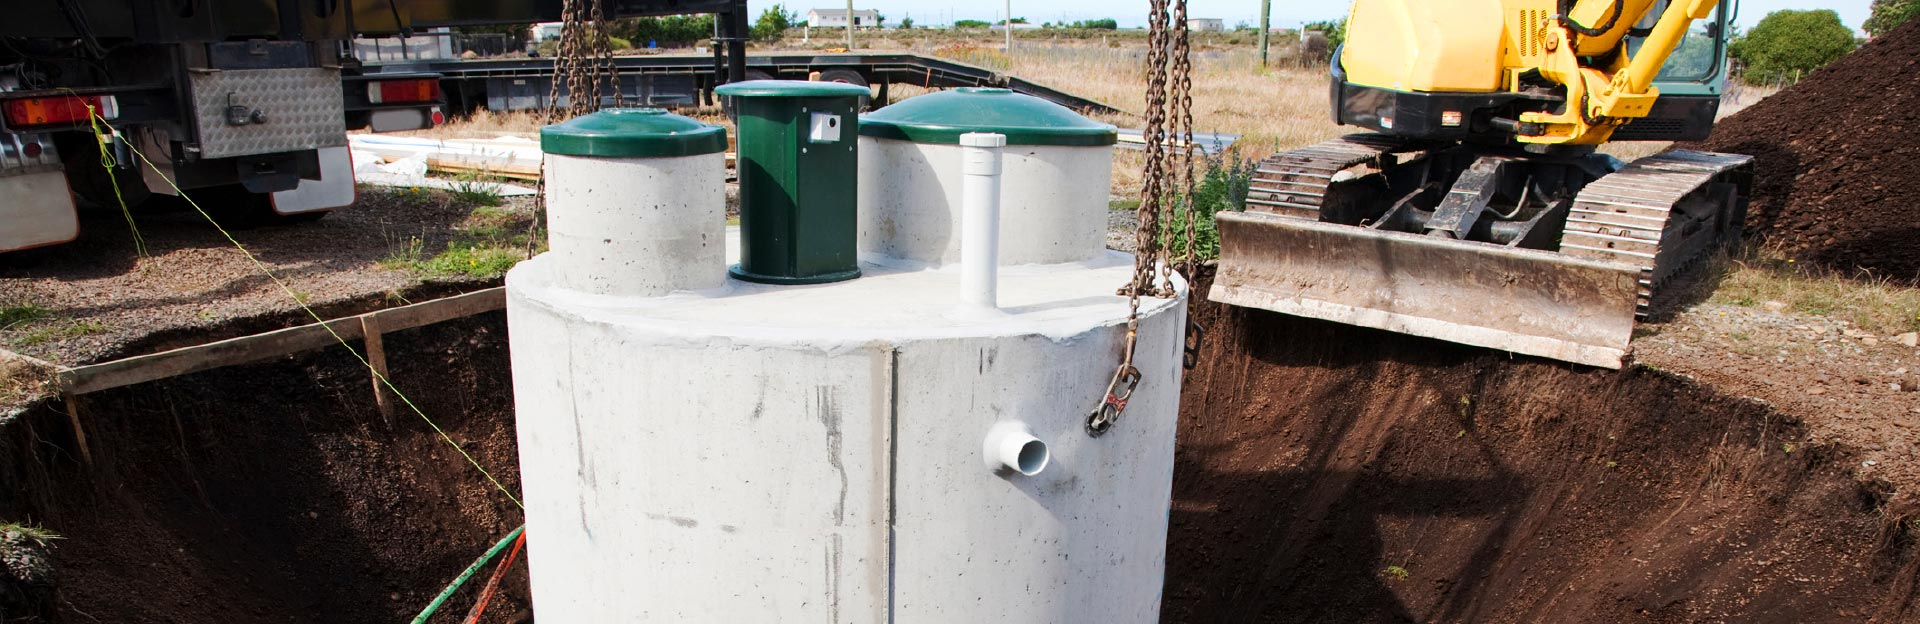 Paul Swoyer for septic system design in Central Texas